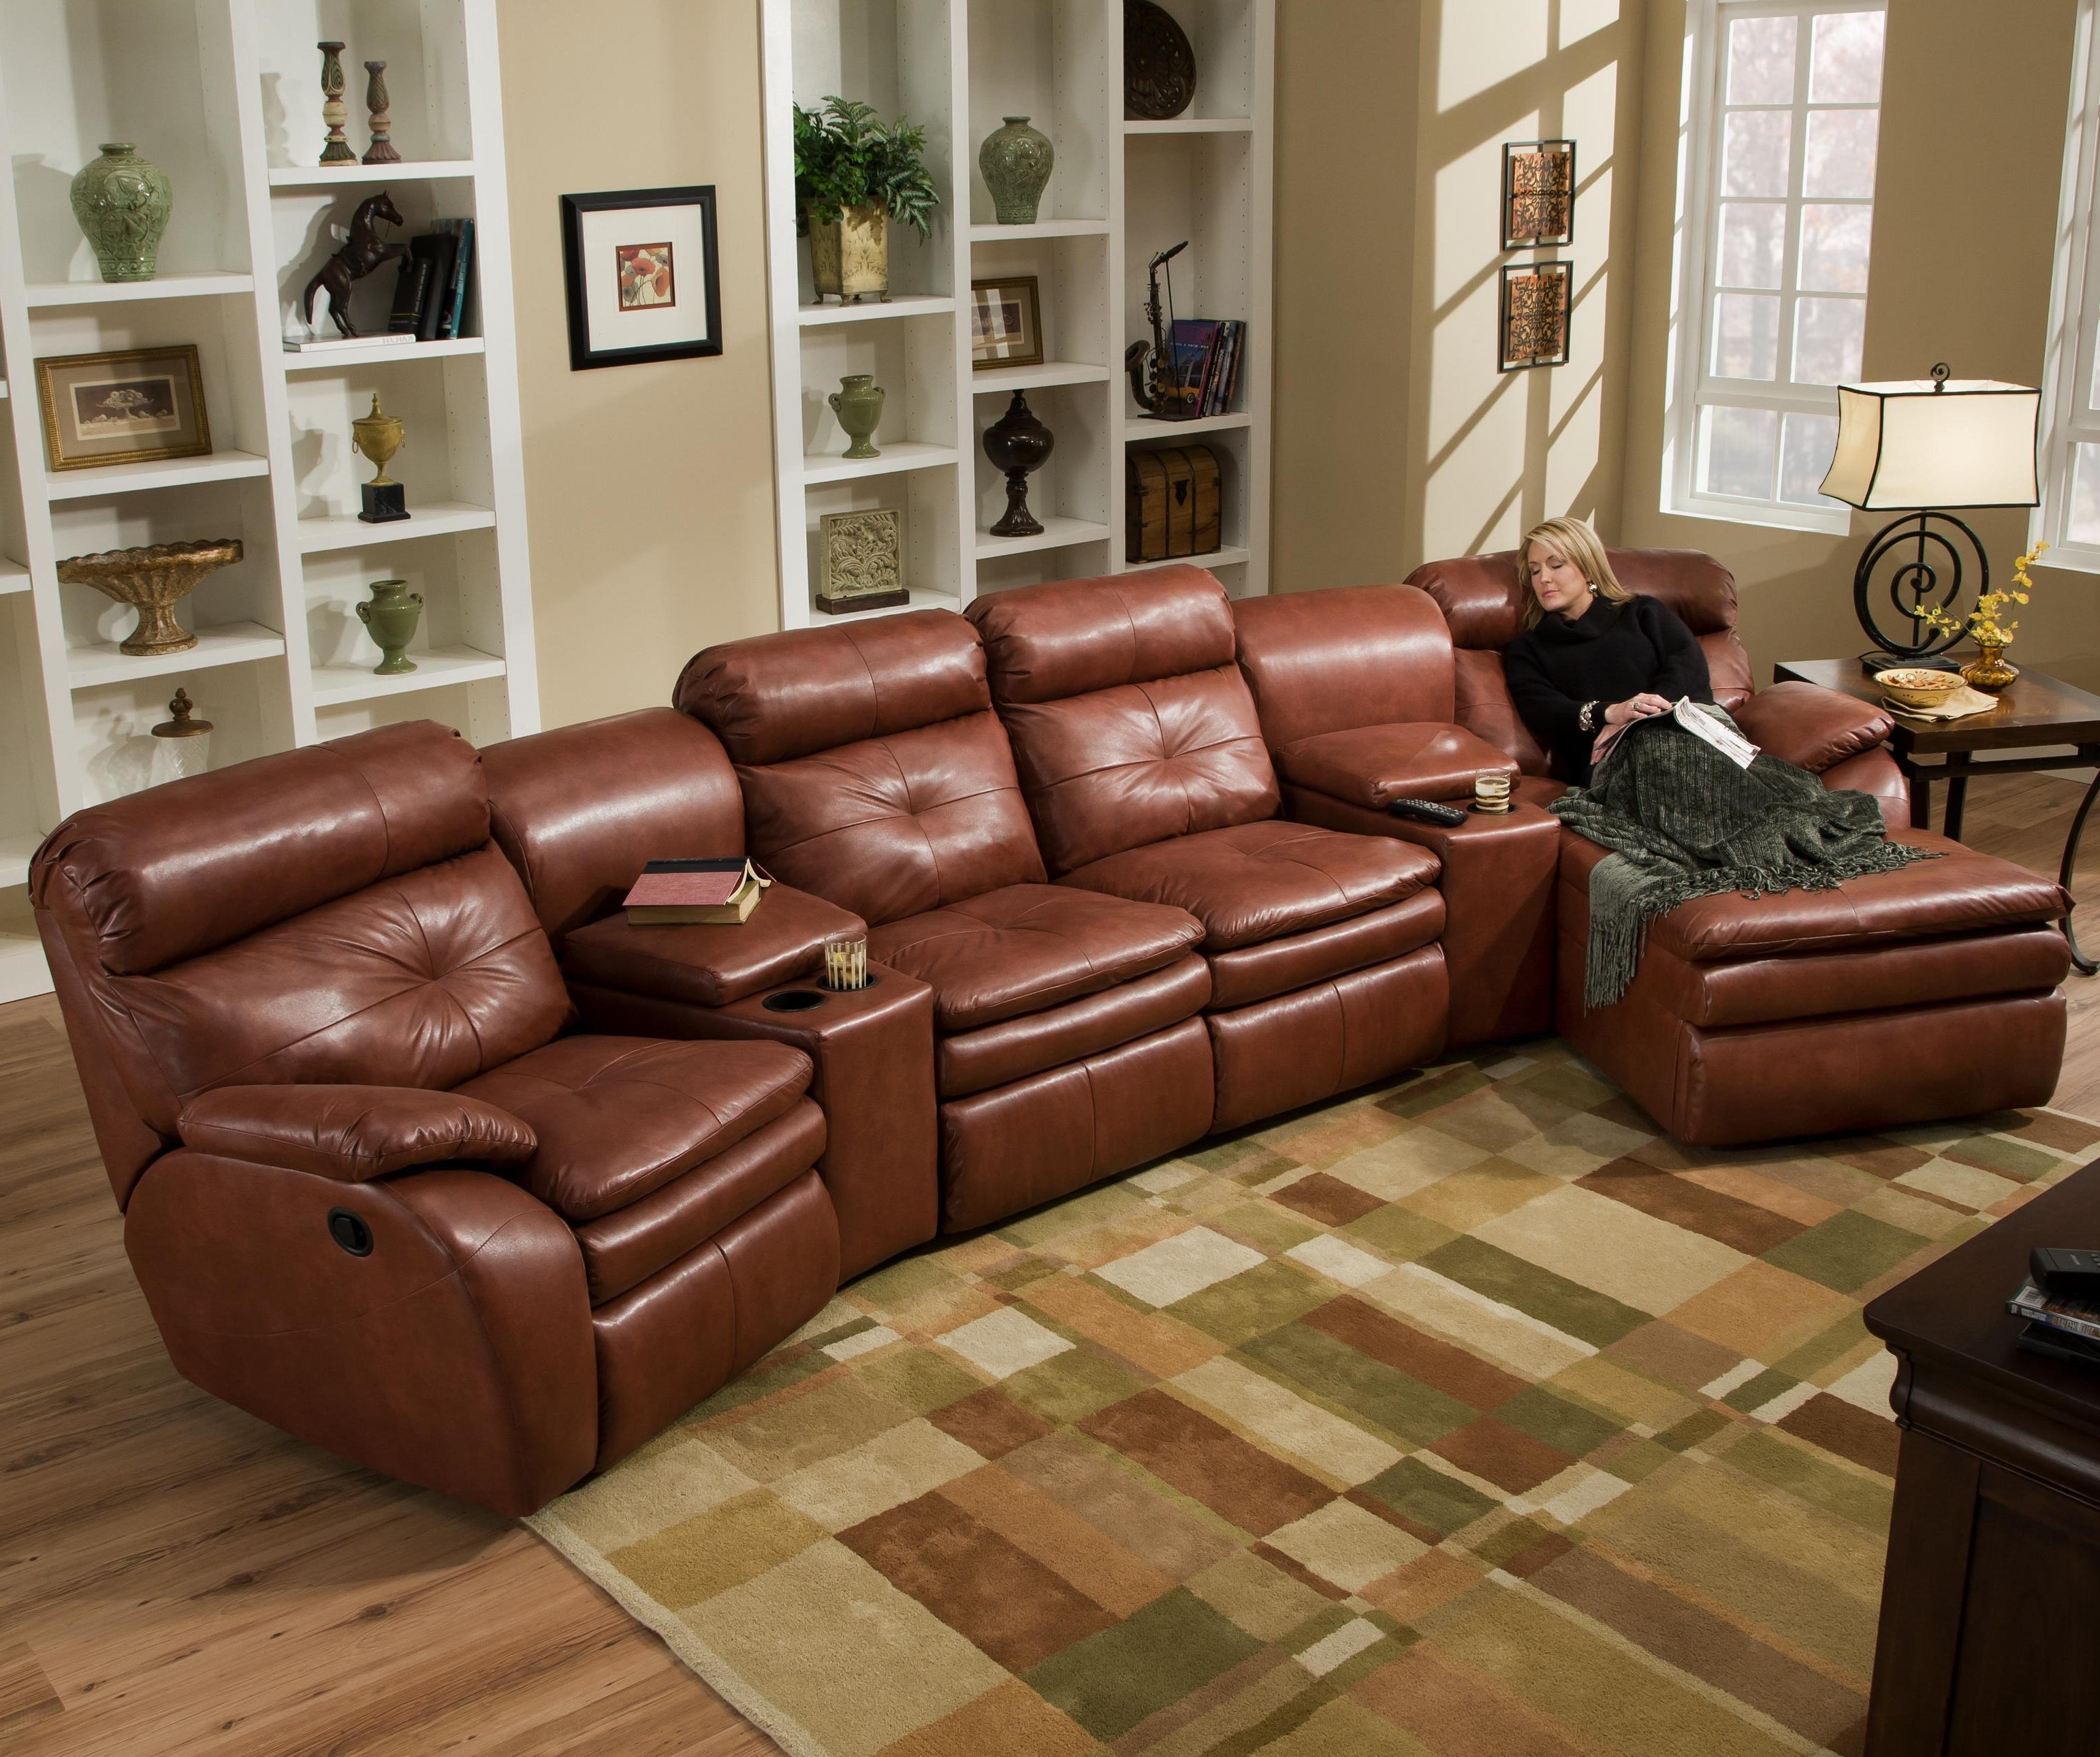 Recent Sectional Sofas With Recliners For Small Spaces In Apartment Sized Furniture Living Room Small Space Reclining Sofa (View 8 of 15)